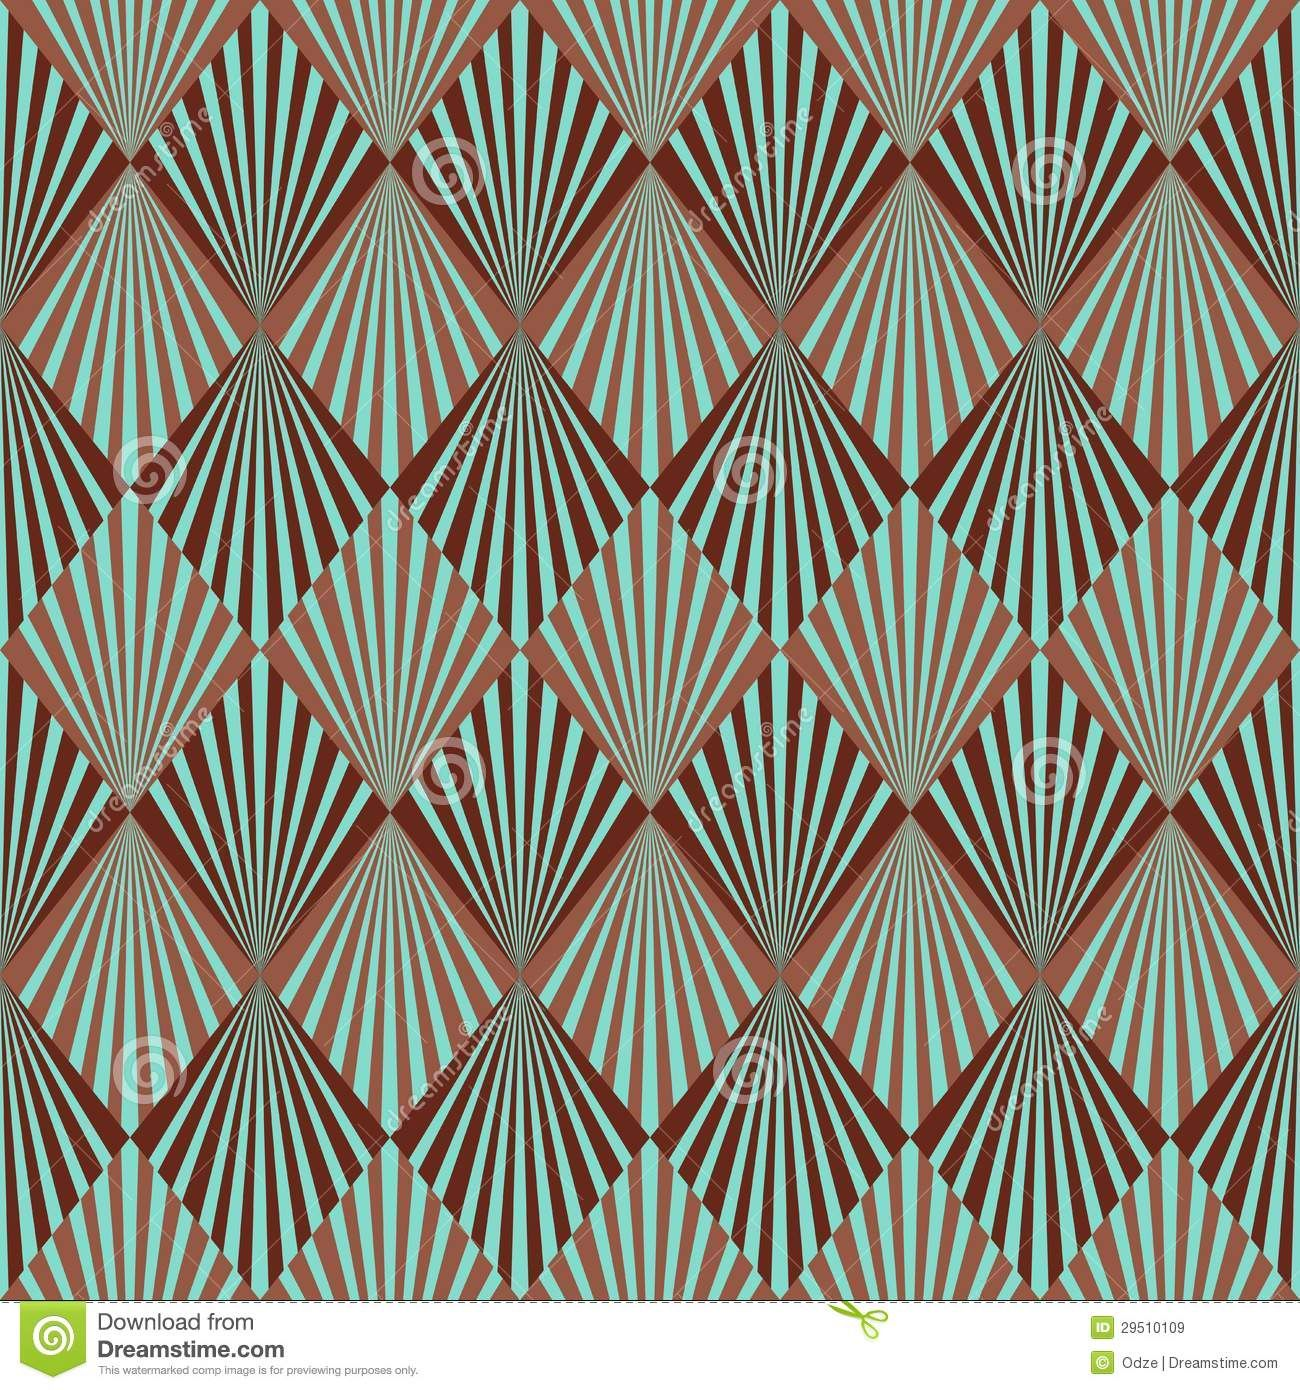 Art Deco Pattern - Download From Over 26 Million High Quality ...